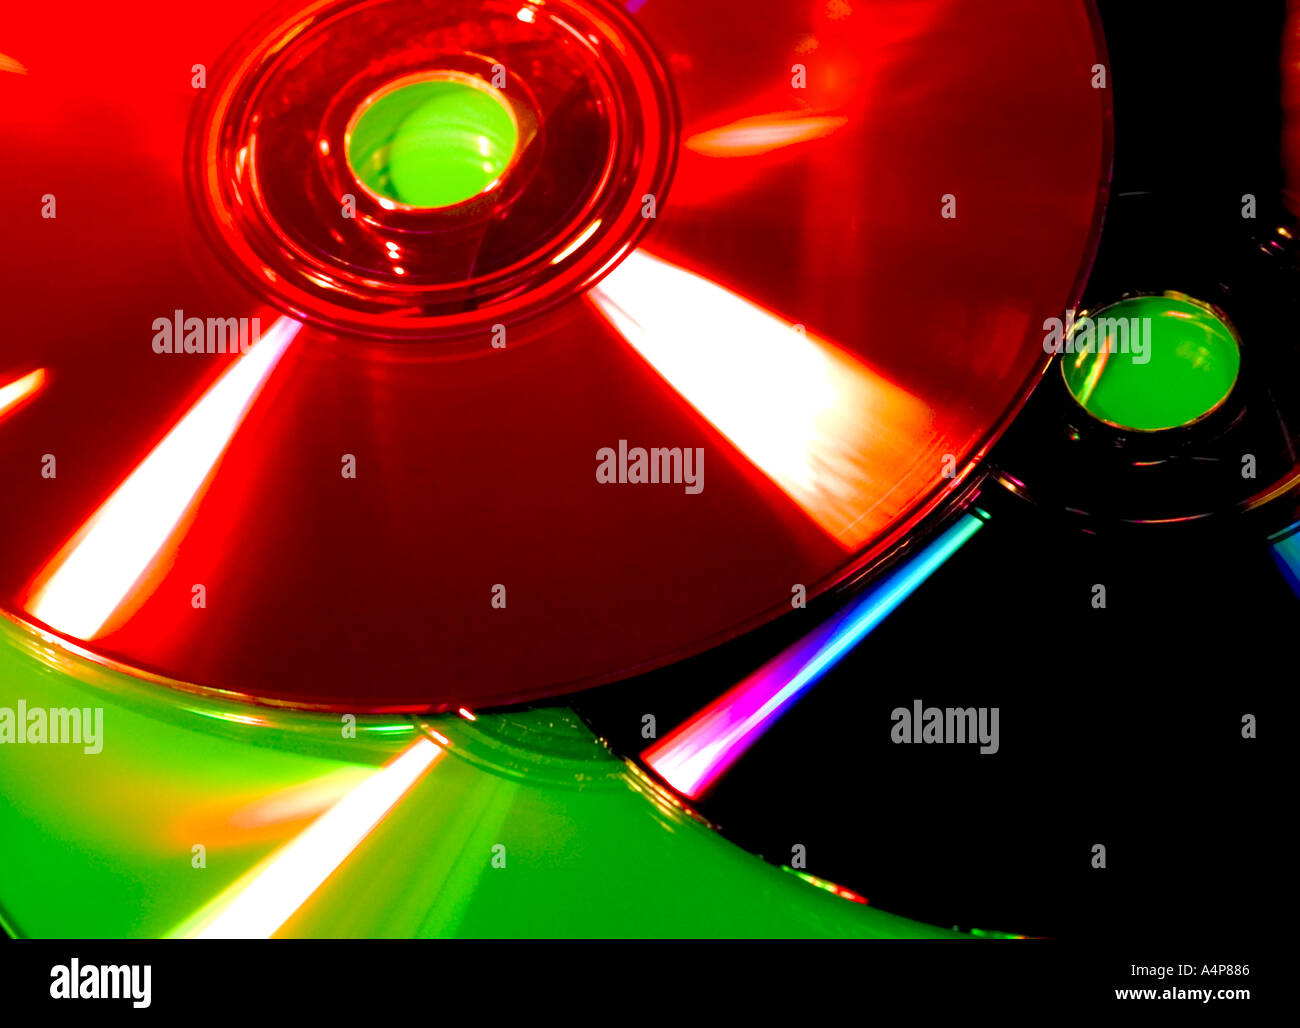 Cd s DVD s Photo - Stock Image